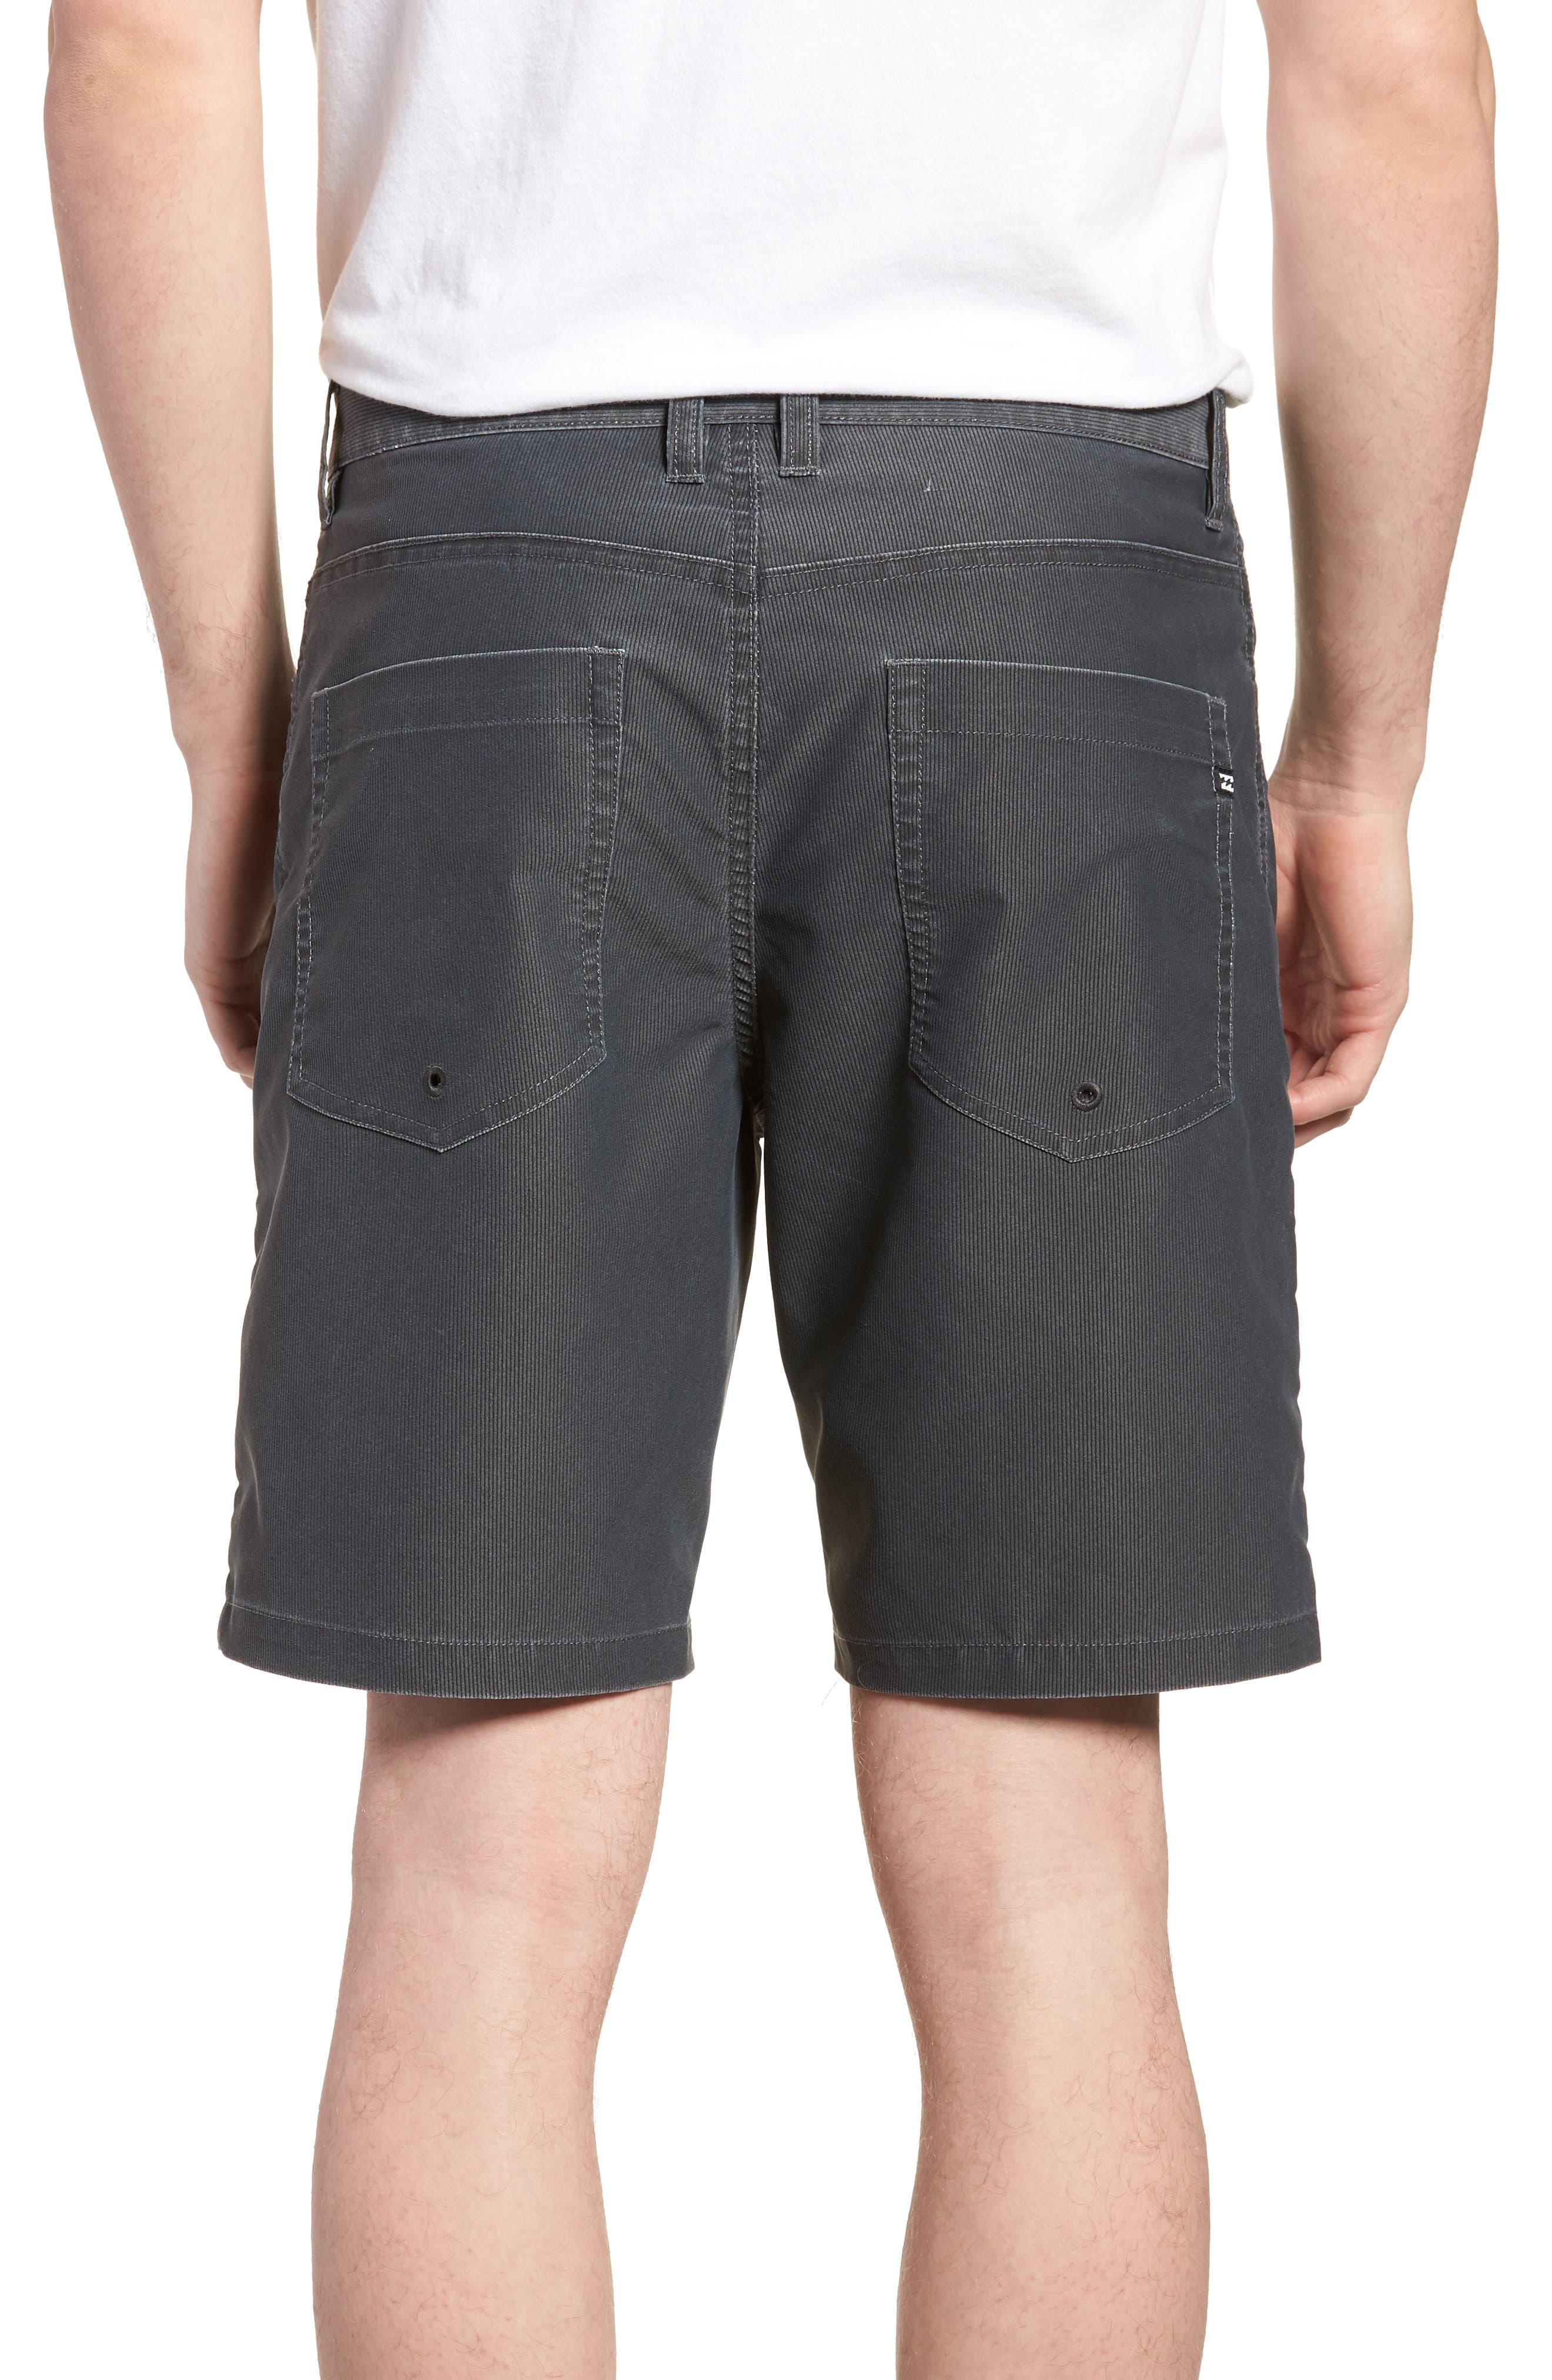 Outsider X Surf Corduroy Shorts,                             Alternate thumbnail 2, color,                             001